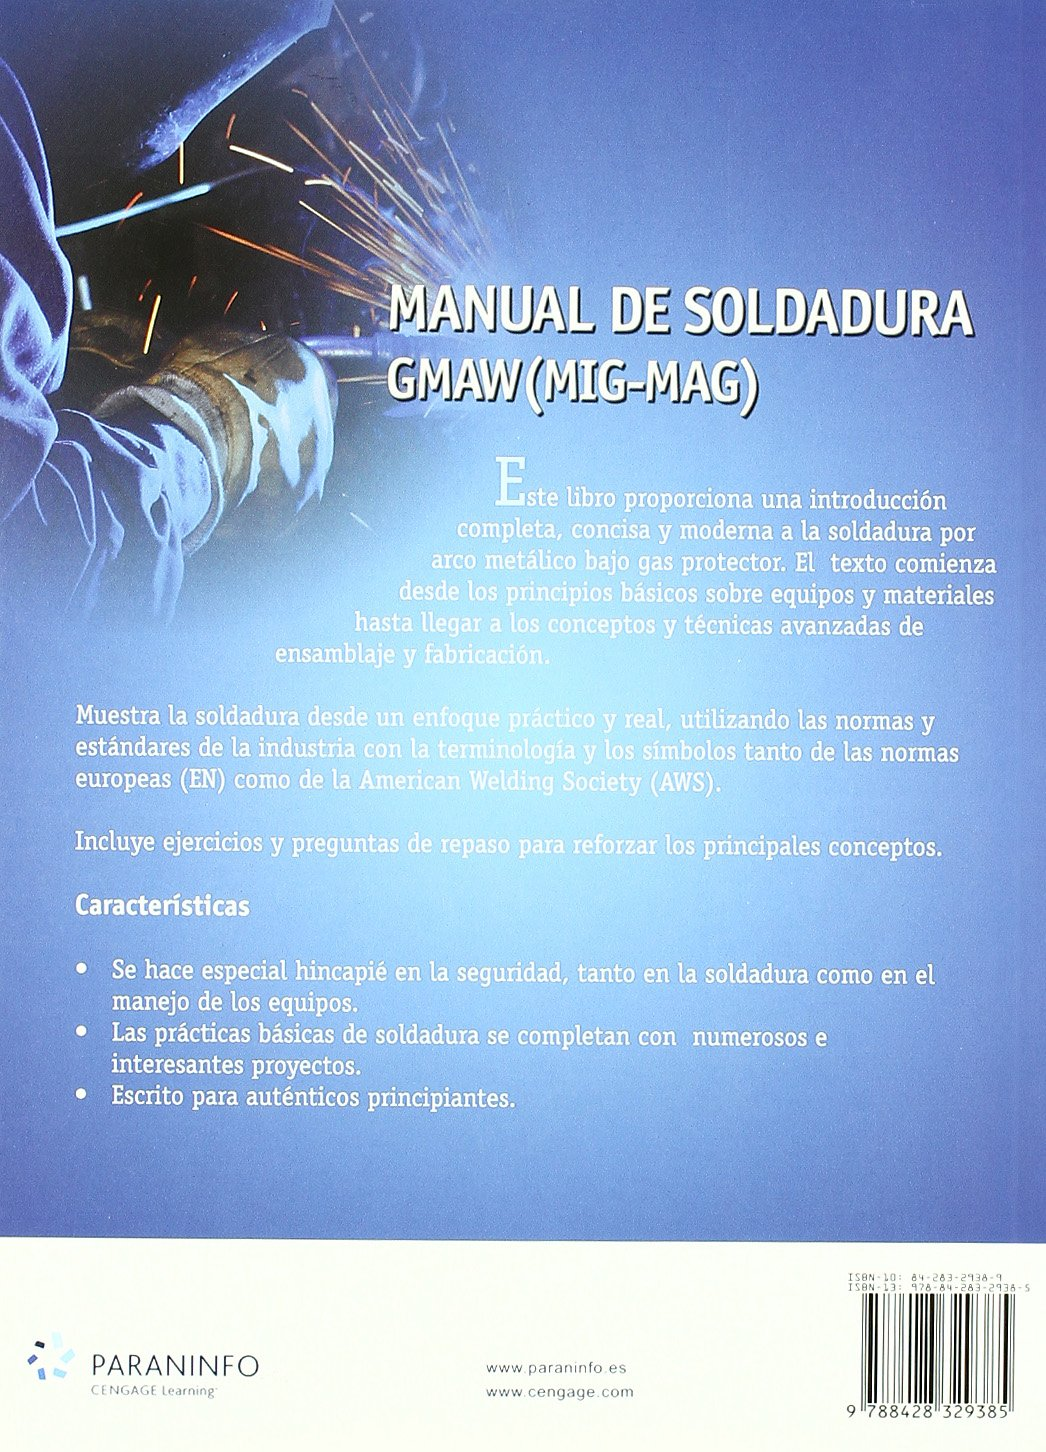 Manual de soldadura gmaw MIG MAG: RICHARD; JEFFUS, LARRY ROWE: 9788428329385: Amazon.com: Books